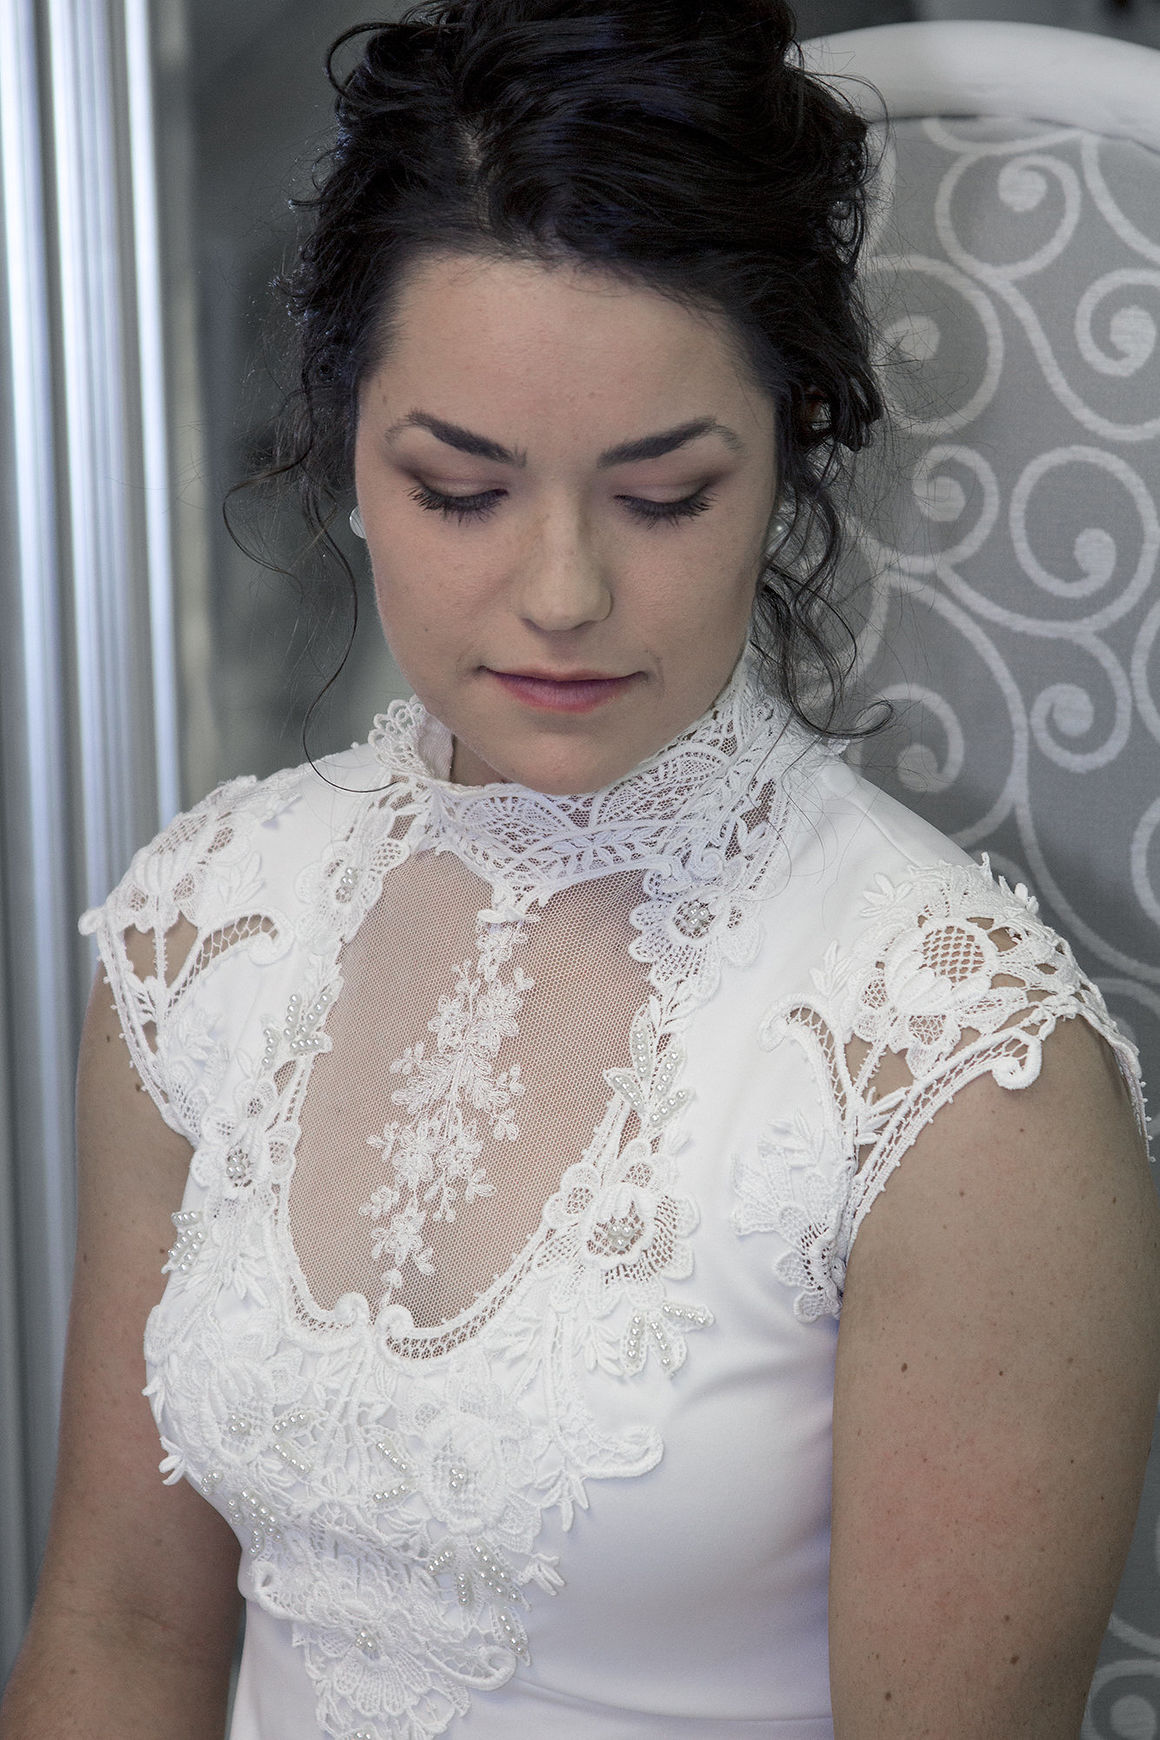 84d3966cd19e7 She said 'yes' to the dress and helped a good cause | Life | daily ...